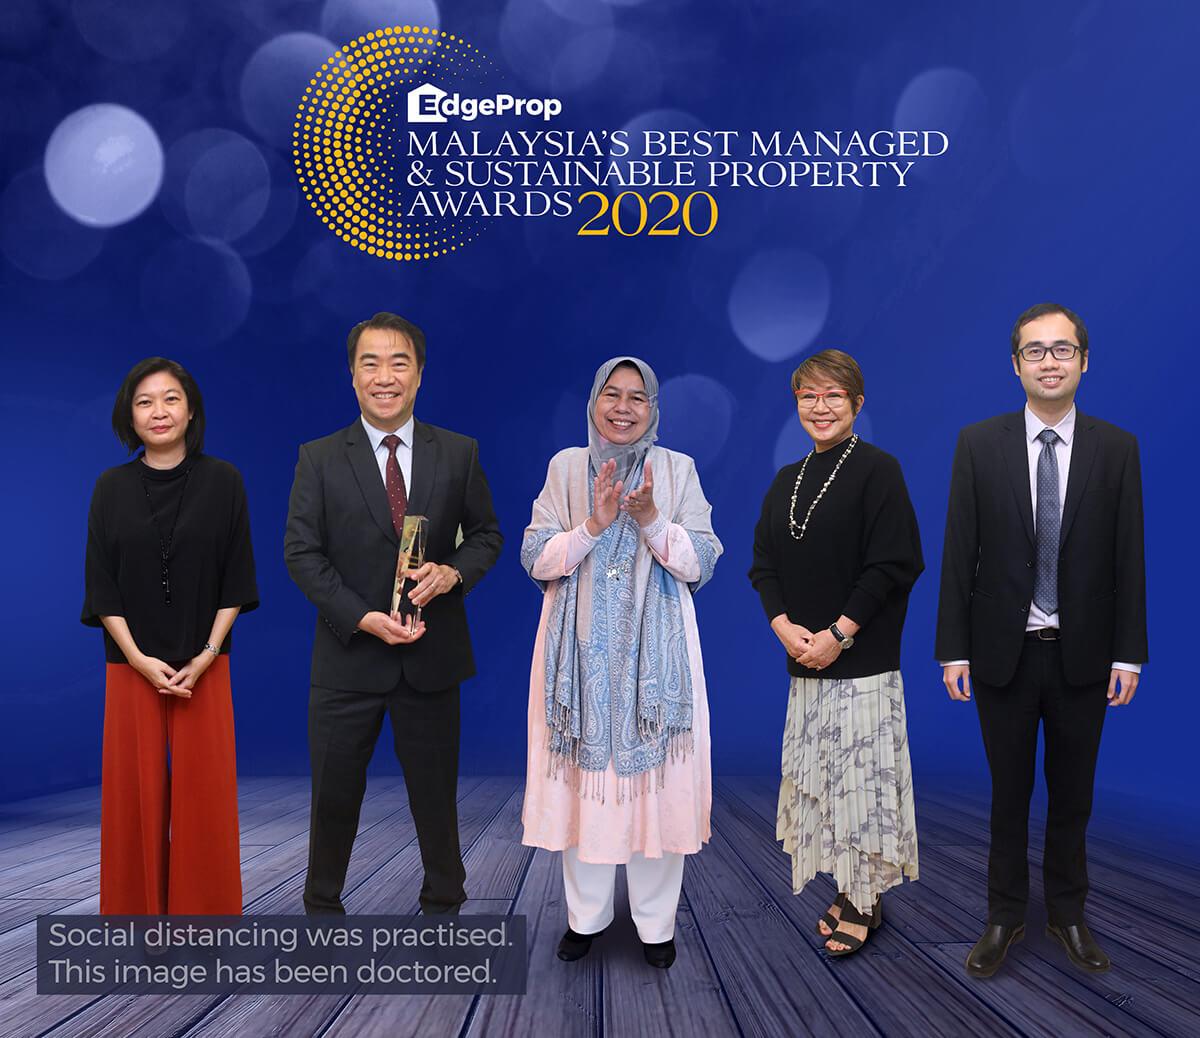 Gamuda Land received EdgeProp Malaysia's Responsible Developer: Building Sustainable Development Award 2020. From left: EdgeProp Malaysia executive editor Sharon Kam, Ngan, Housing and Local Government Minister Zuraida Kamaruddin, EdgeProp Malaysia editor-in-chief and managing director Au Foong Yee and EdgeProp Malaysia director of business and product development Alvin Ong.